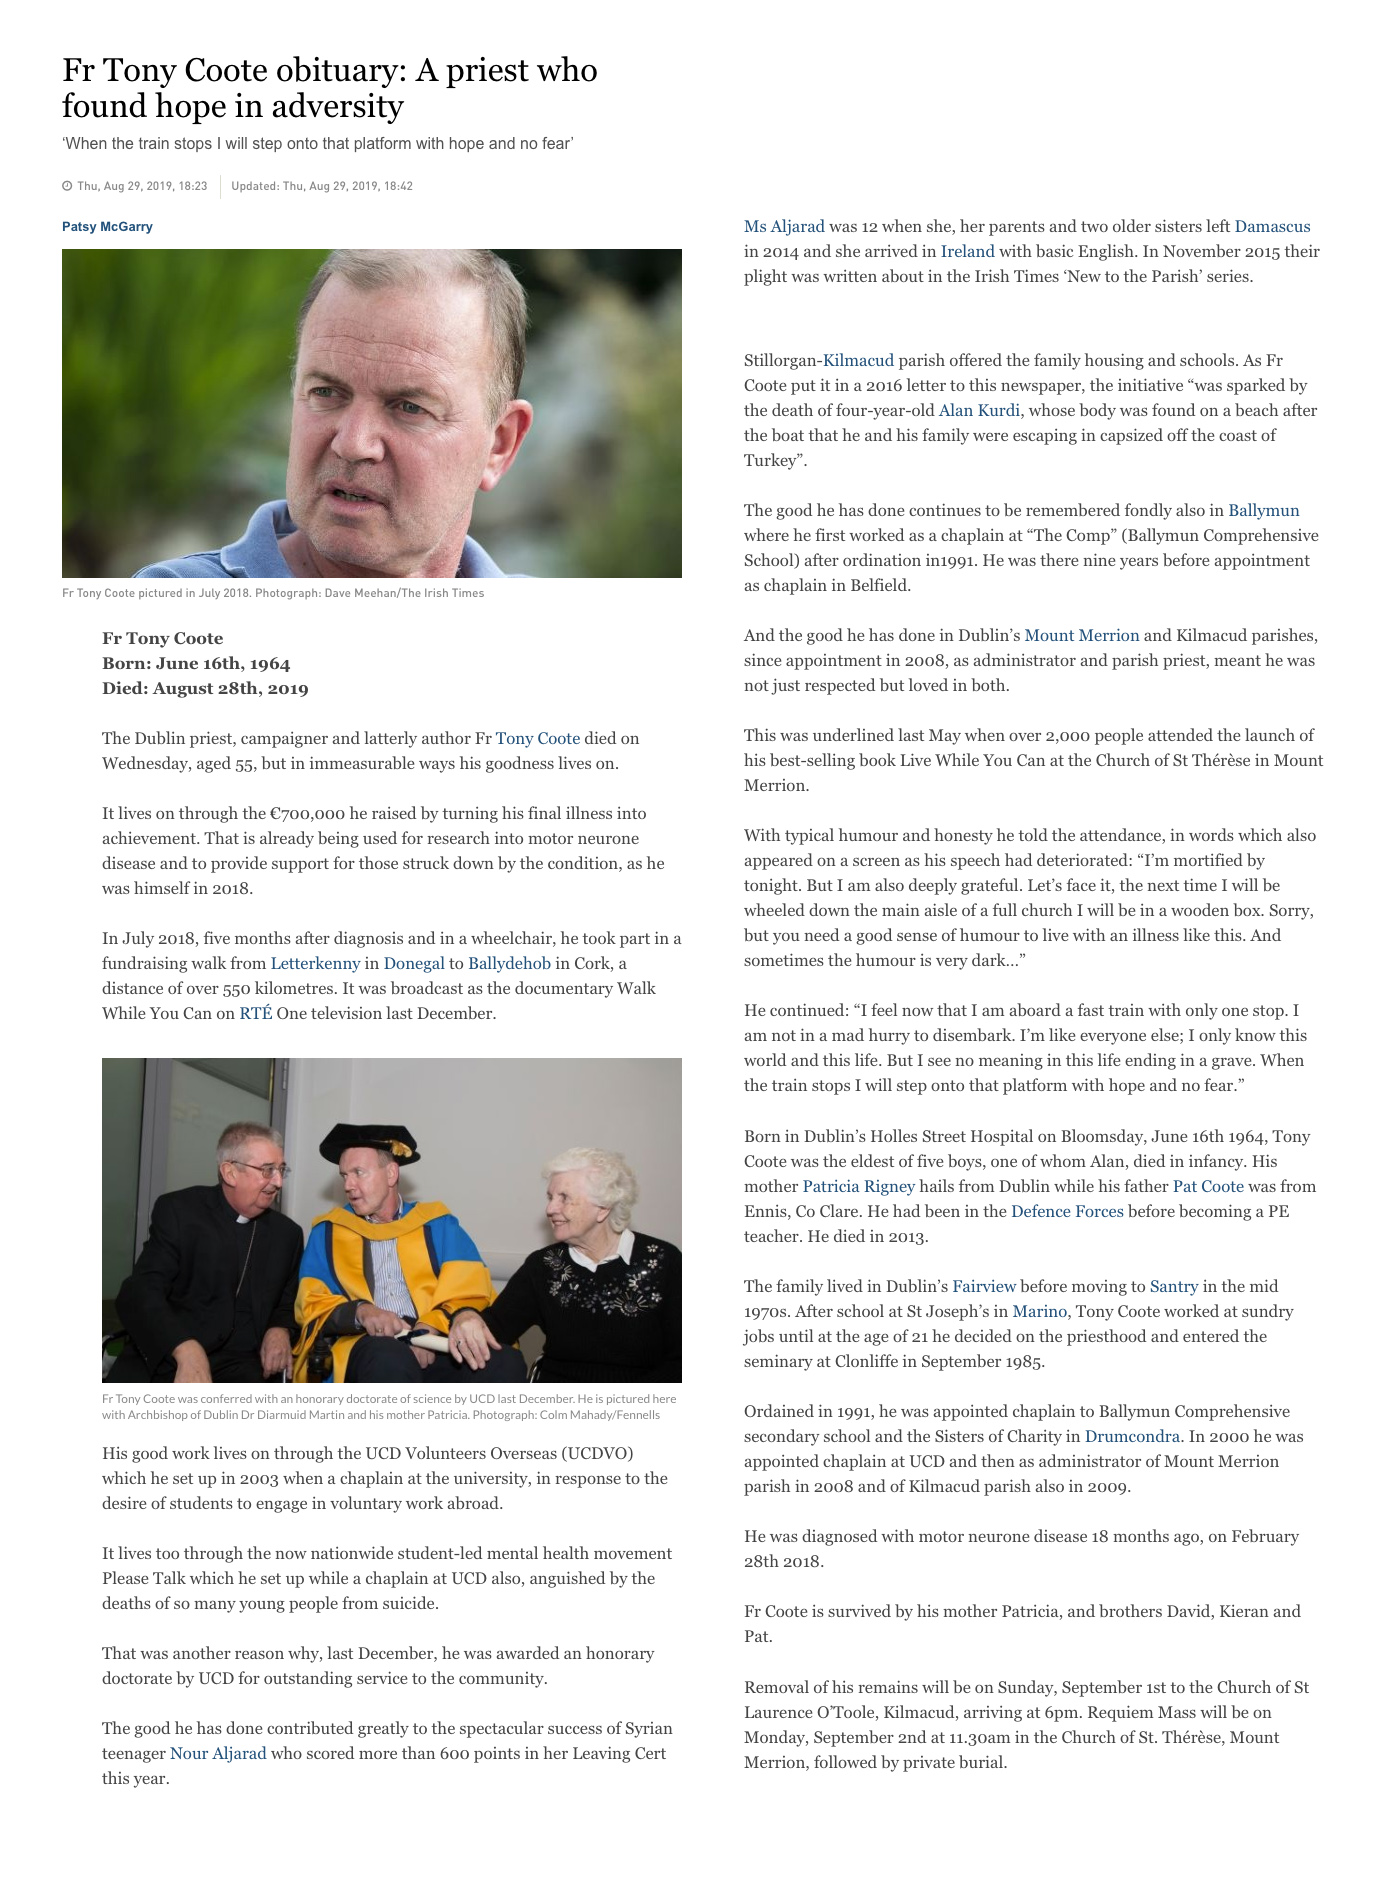 Full Article: https://www.irishtimes.com/news/social-affairs/religion-and-beliefs/fr-tony-coote-obituary-a-priest-who-found-hope-in-adversity-1.4001608